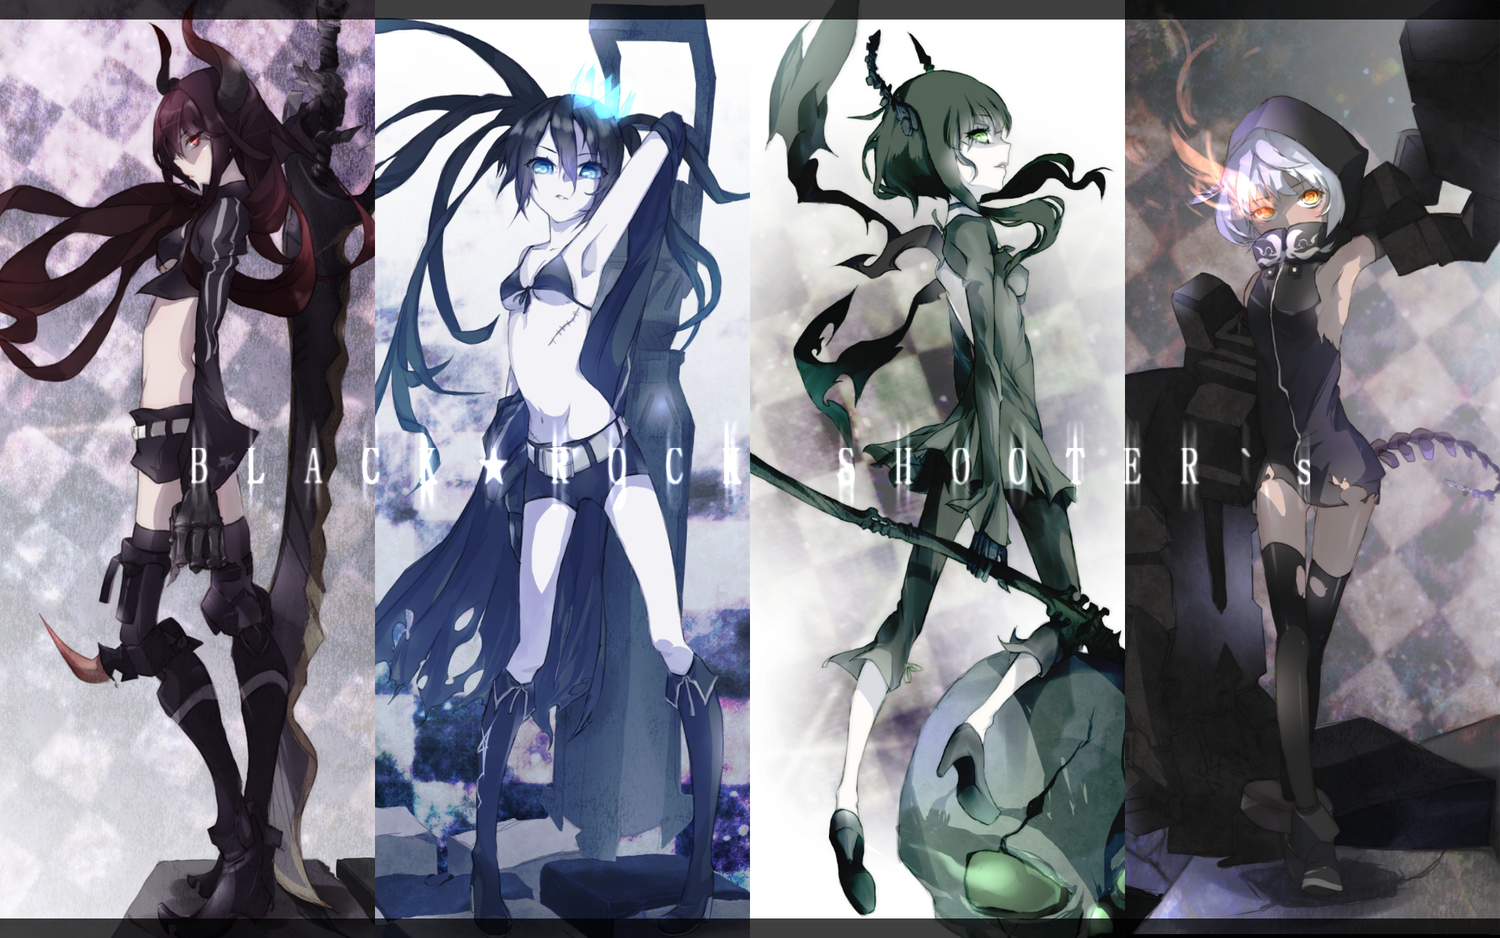 Wallpapers Pack 7 Black Rock Shooter 僕はコエズミです